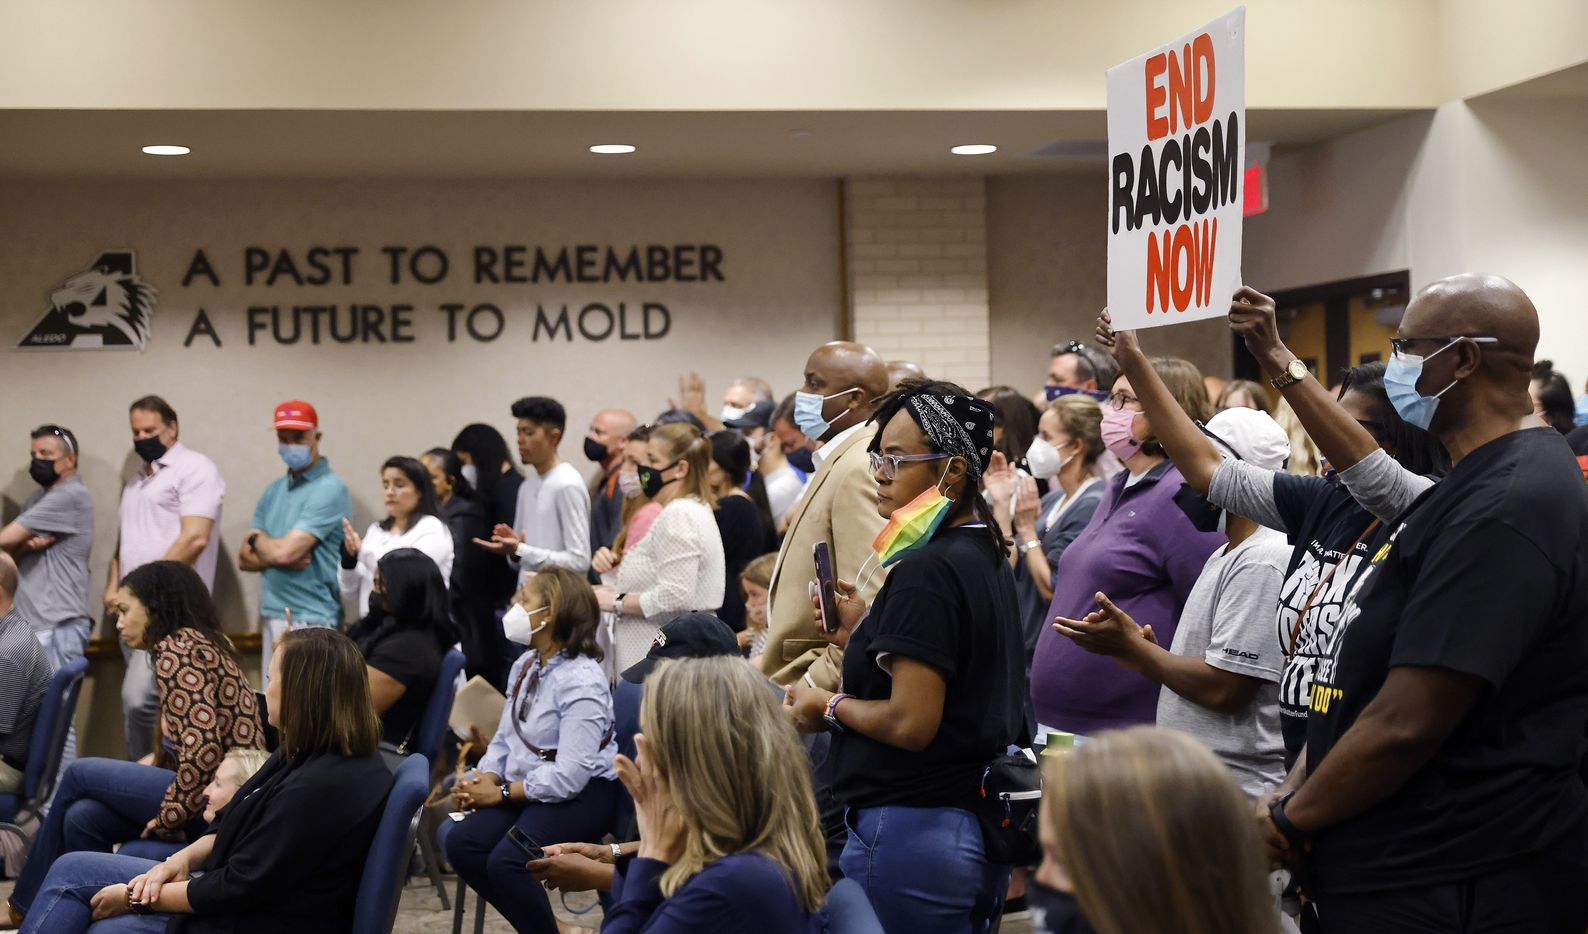 """Parents and supporters gathered in the Aledo ISD school board chamber to voice their concerns about racism in the district following a student-led Snapchat group with multiple names, including """"Slave Trade"""" and another that included a racial slur, Monday, April 19, 2021. The social media post targeted Mioshi Johnson's son, Christopher Johnson, who spoke to the school board himself after being targeted in the social media post. (Tom Fox/The Dallas Morning News)"""